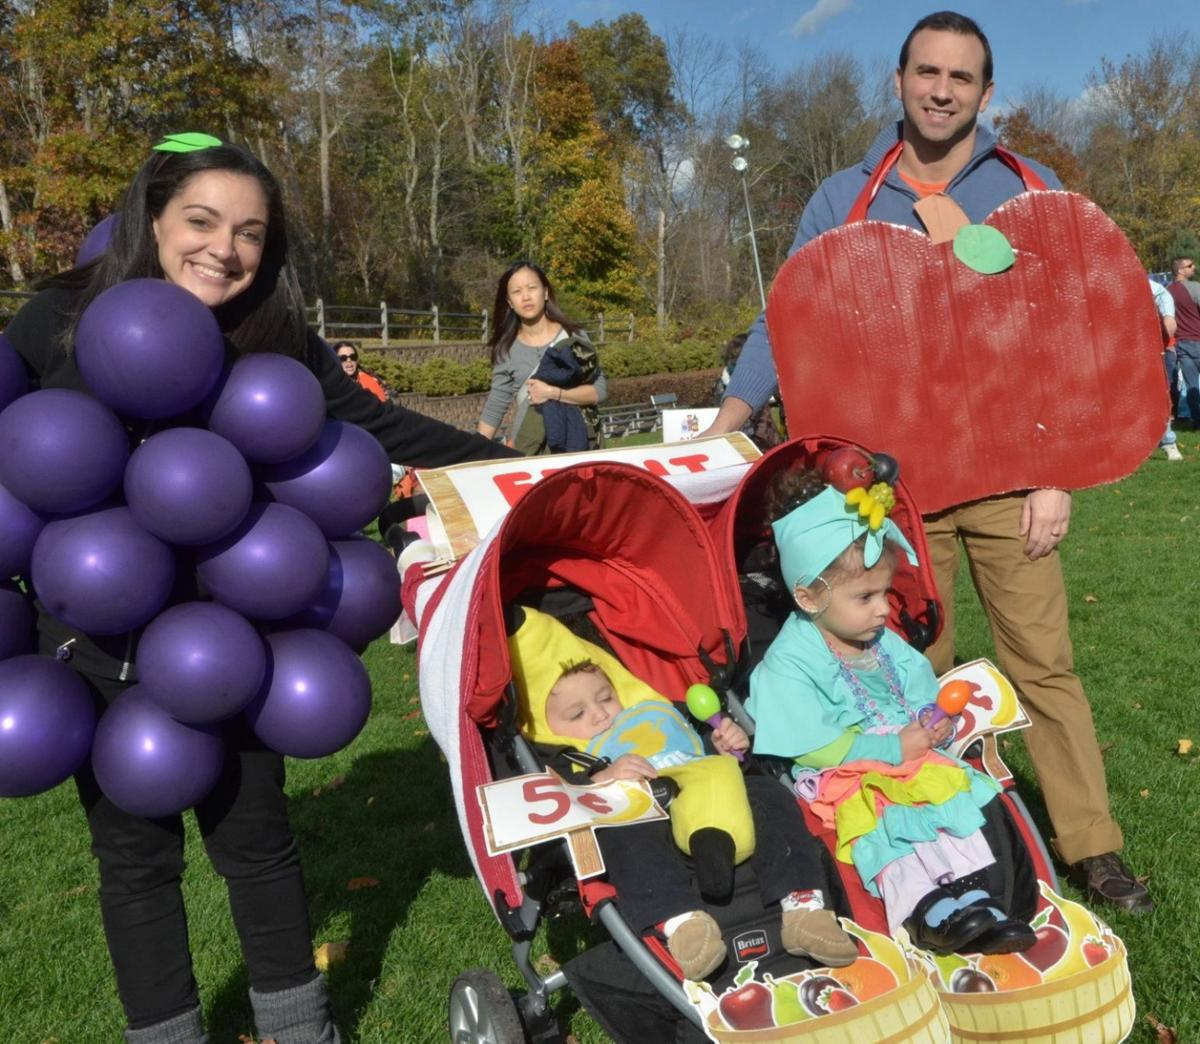 Long Hill Halloween Parade this Sunday, Oct. 22